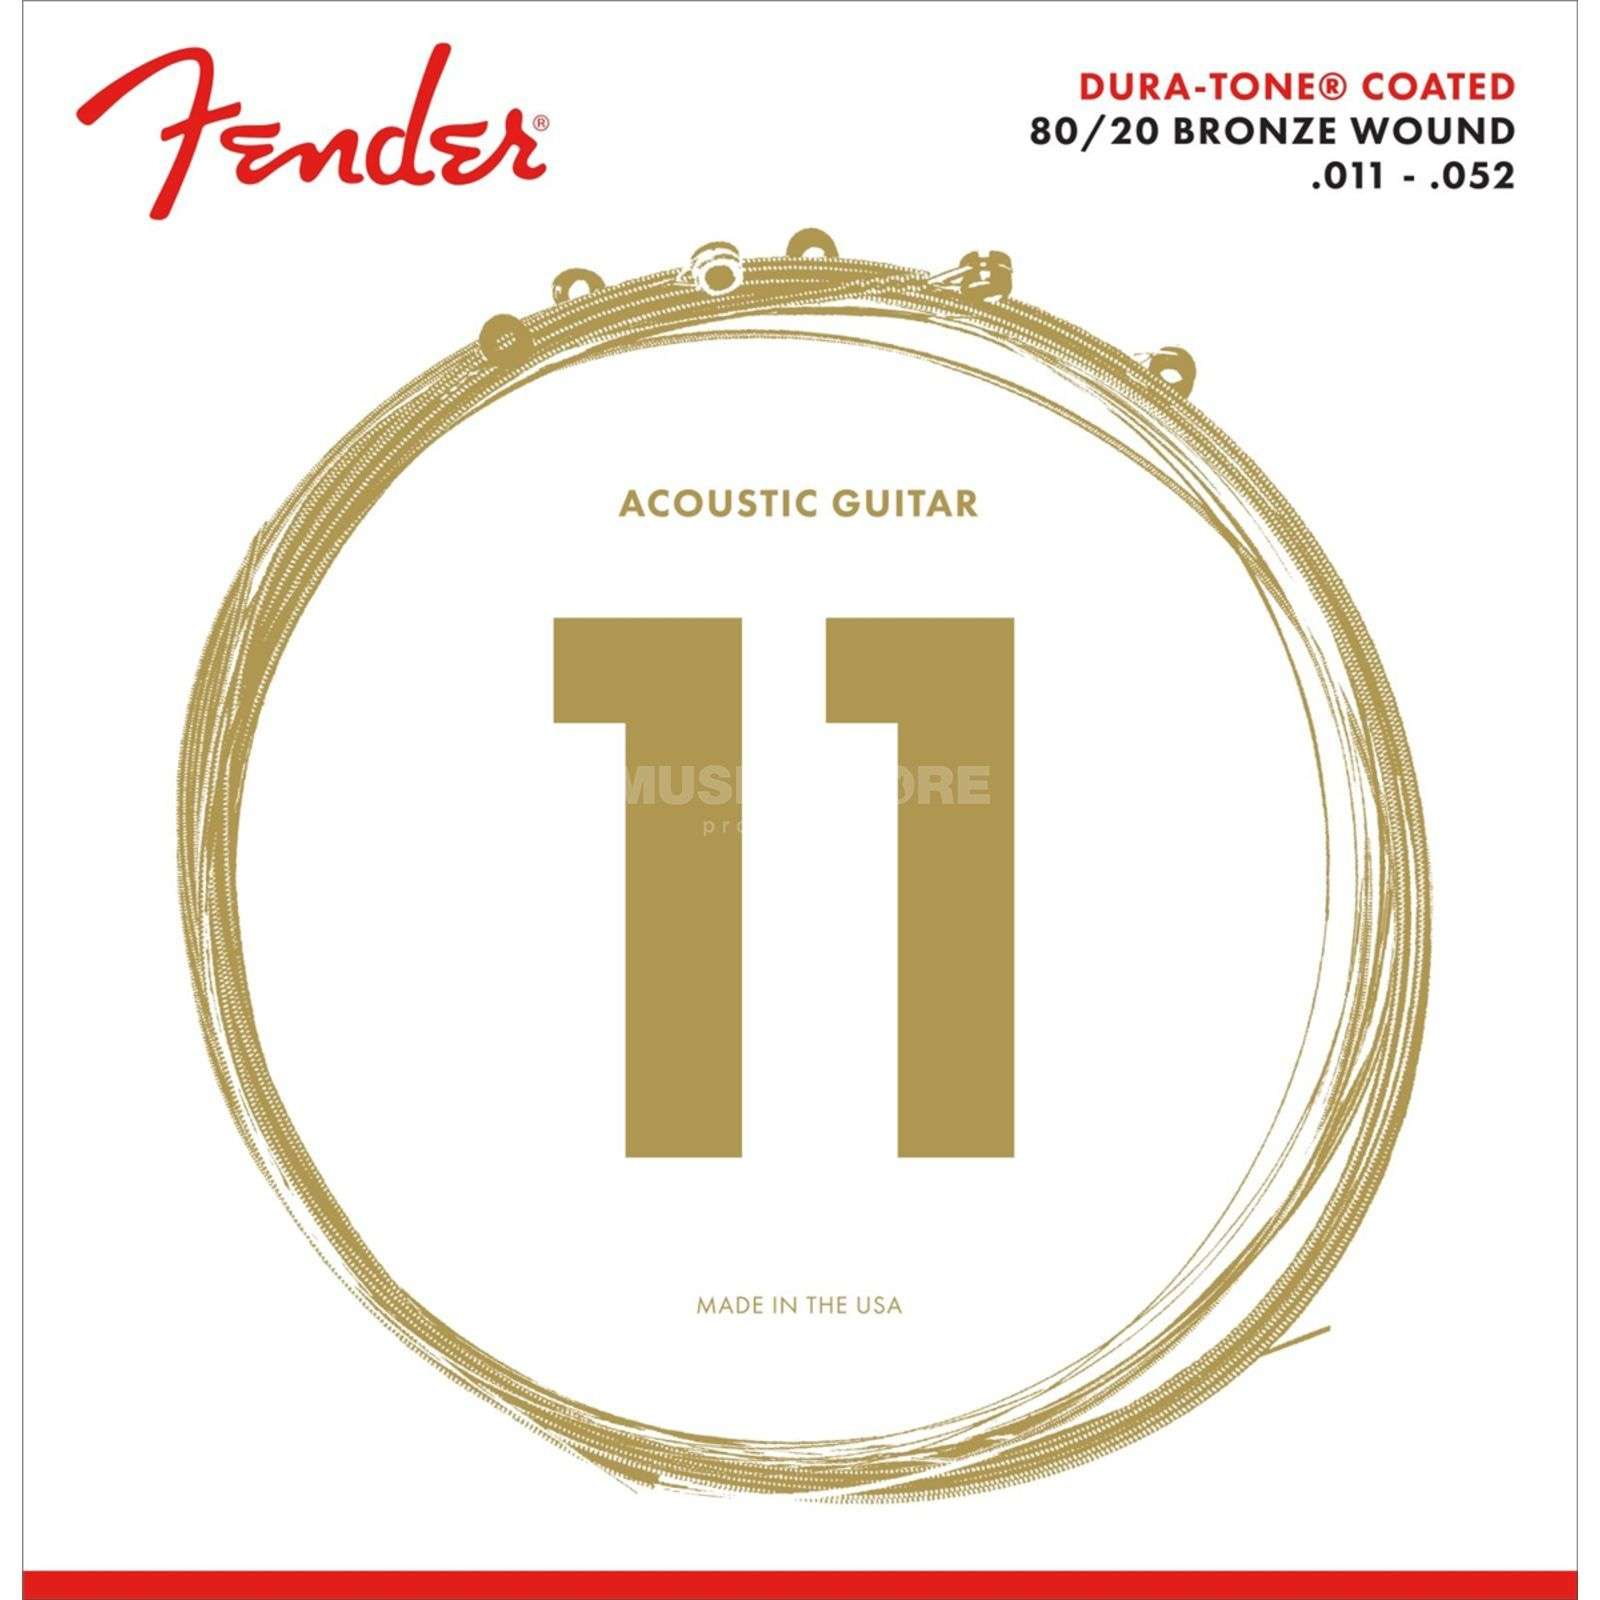 Fender Dura-Tone 880CL Acoustic Guita r Strings   Produktbillede